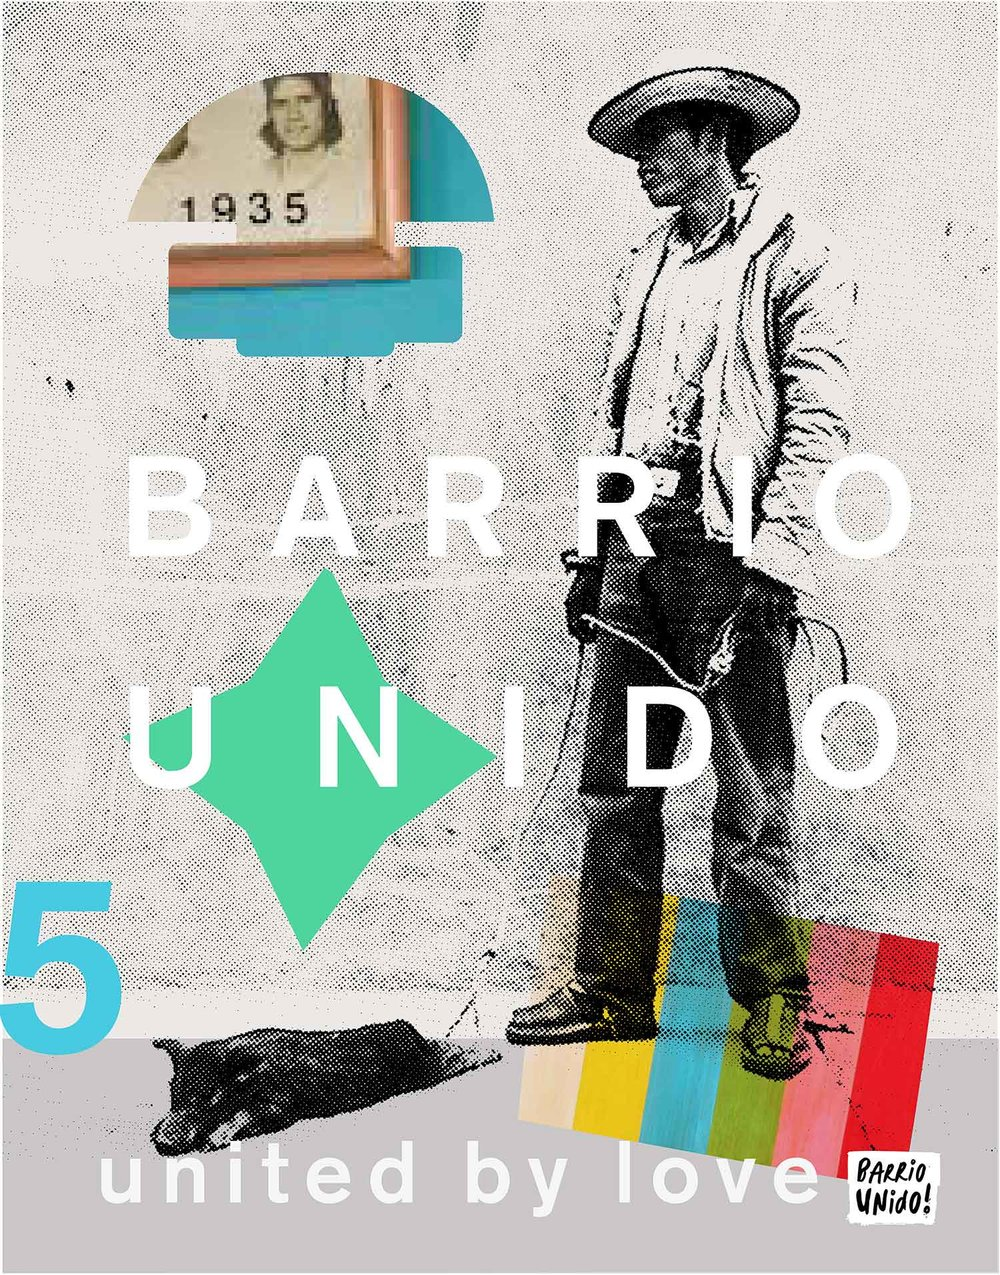 ron-miriello-grafico-barrio-logan-posters-san-diego-community-design-Miriello-branding-officina-03jpg